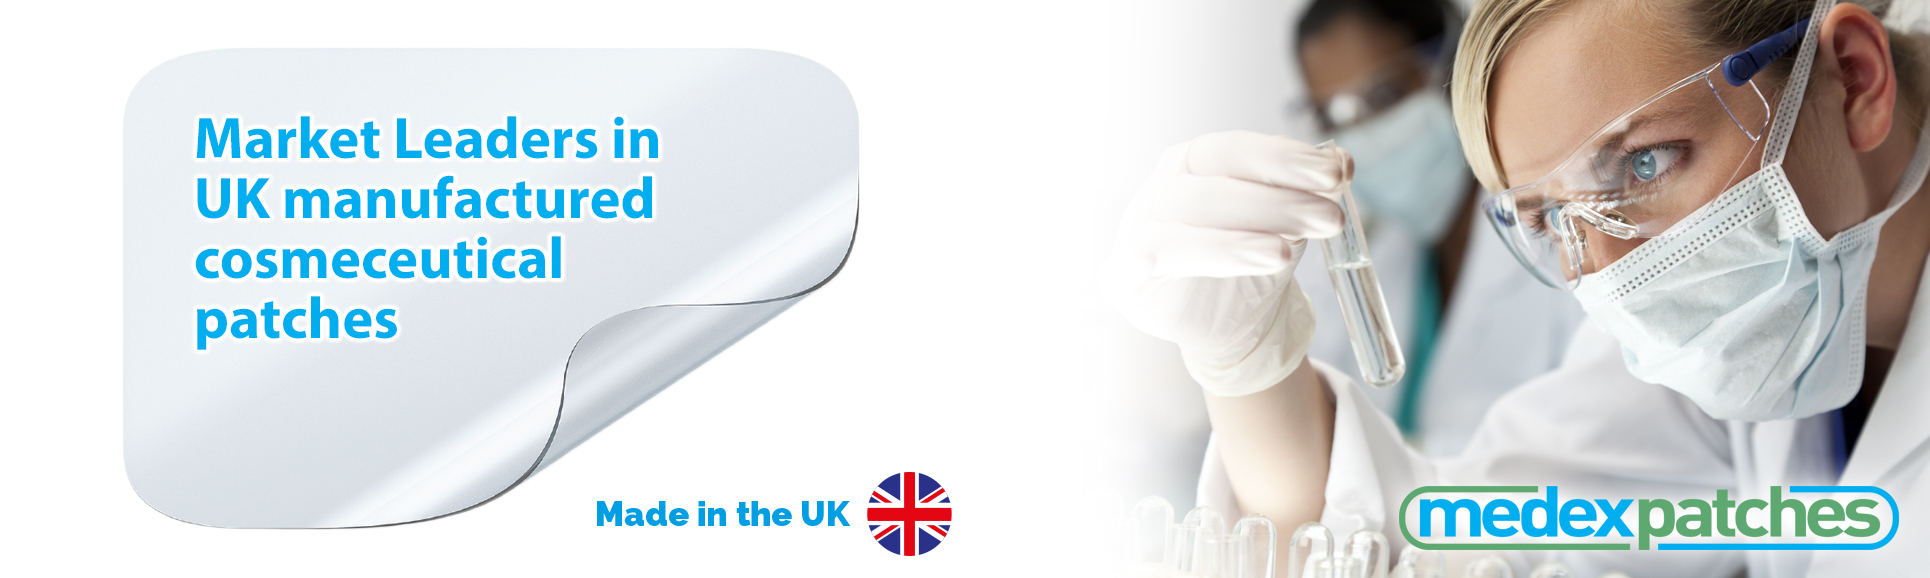 Medex Patches - Leaders in dermal patch technology since 1994